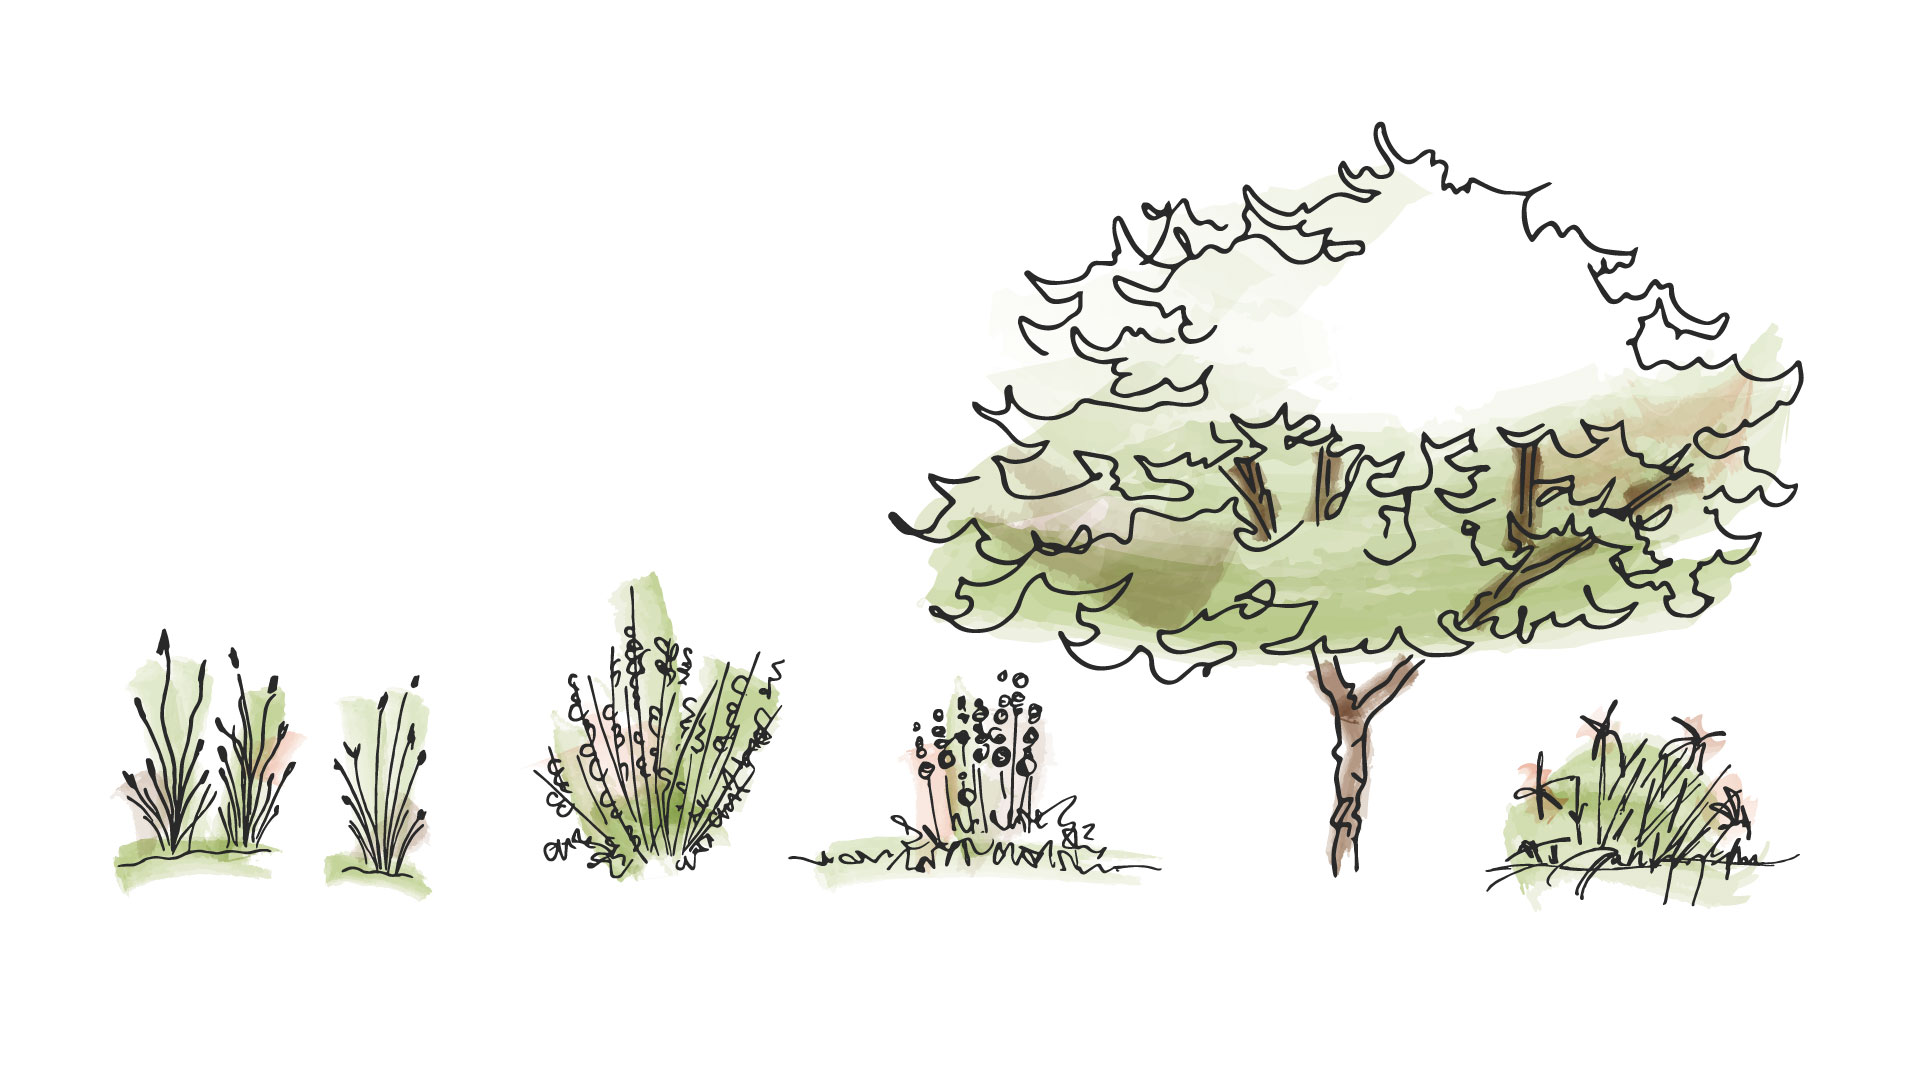 Sketches of greenery, trees, and shrubs with touches of green and tan to resemble architectural shading